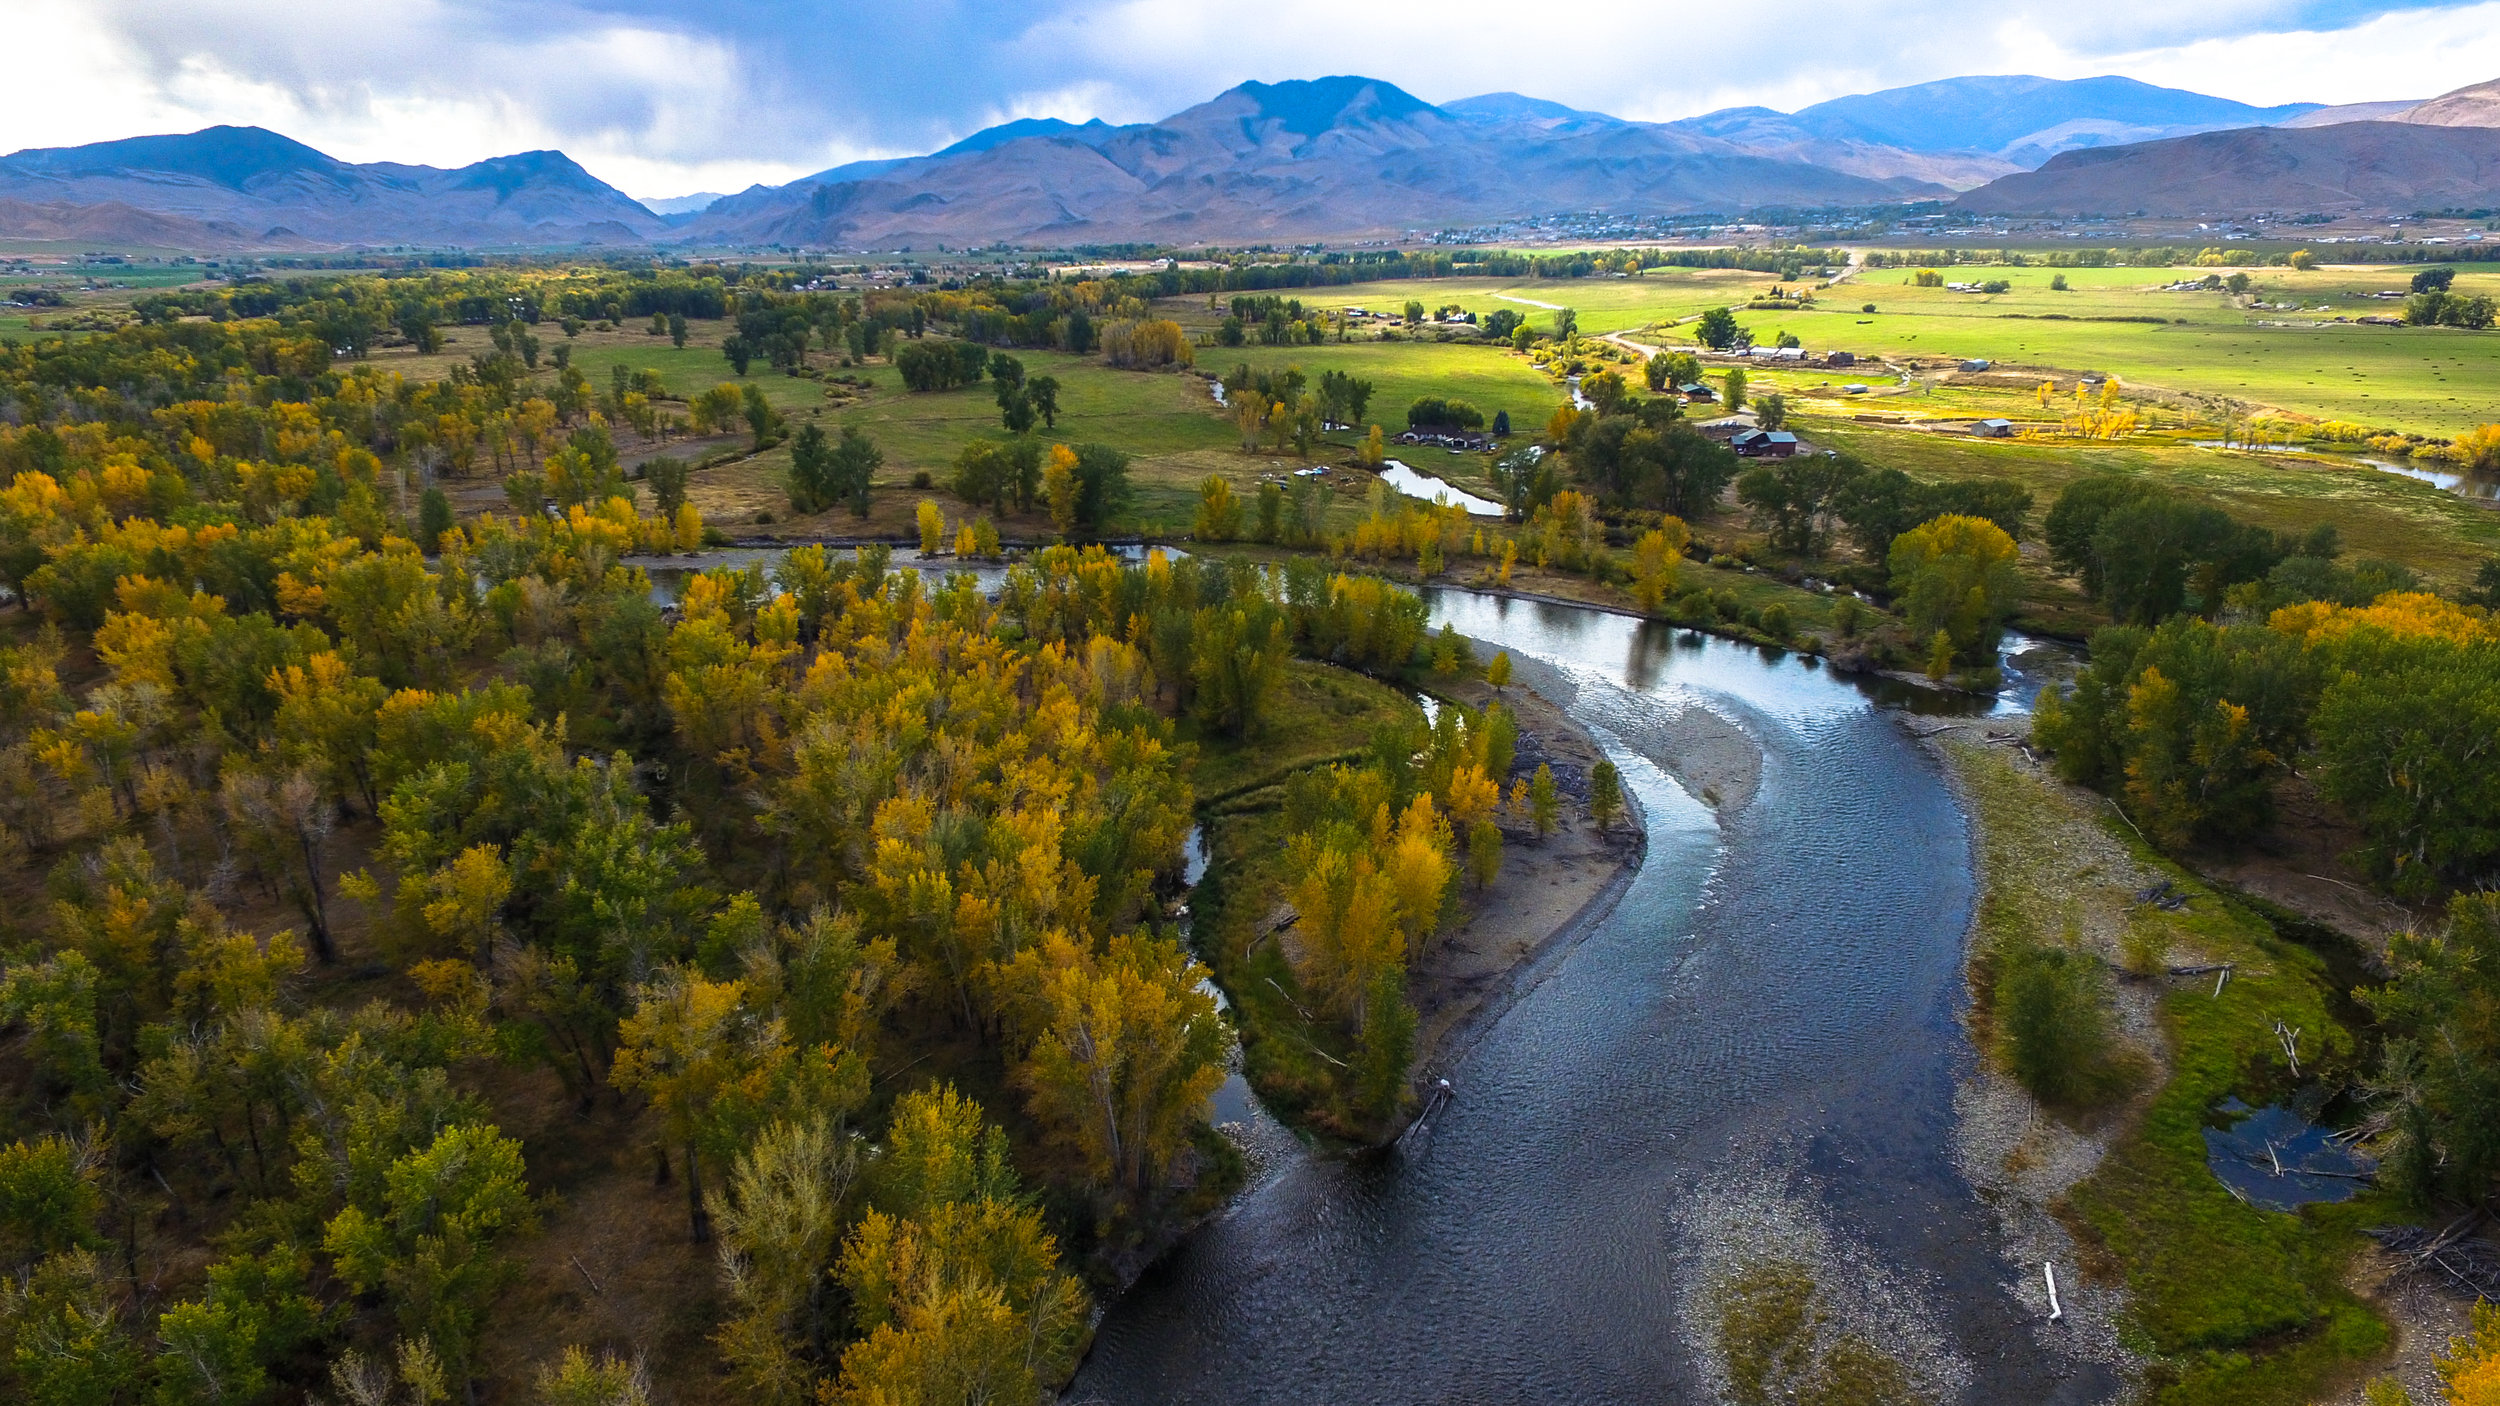 Fell in love with Idaho this Fall